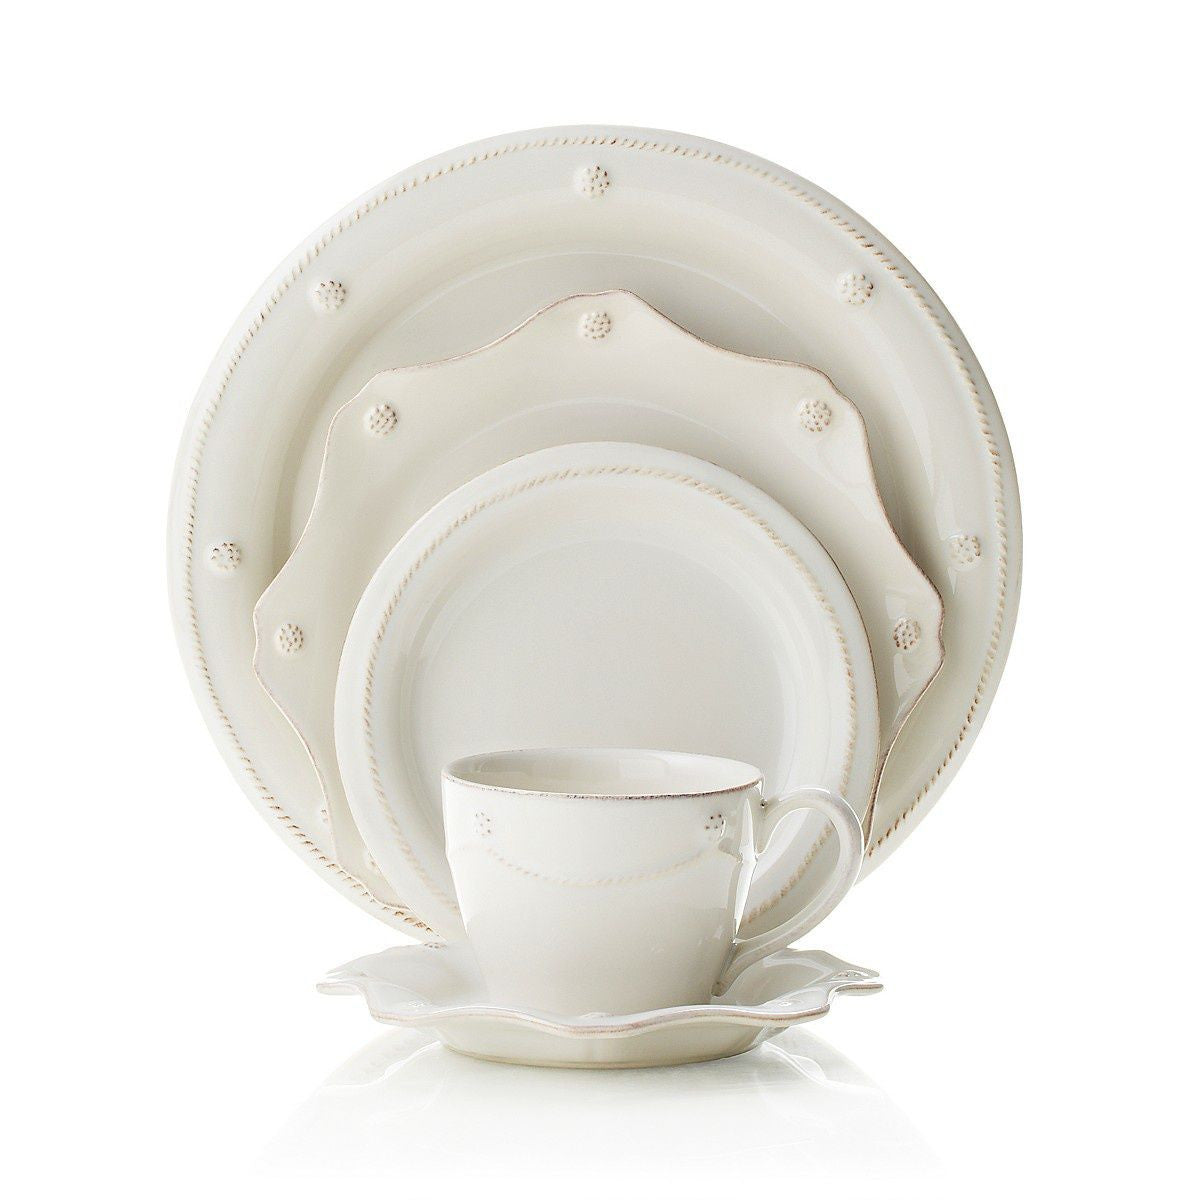 B&T White Tea Cup